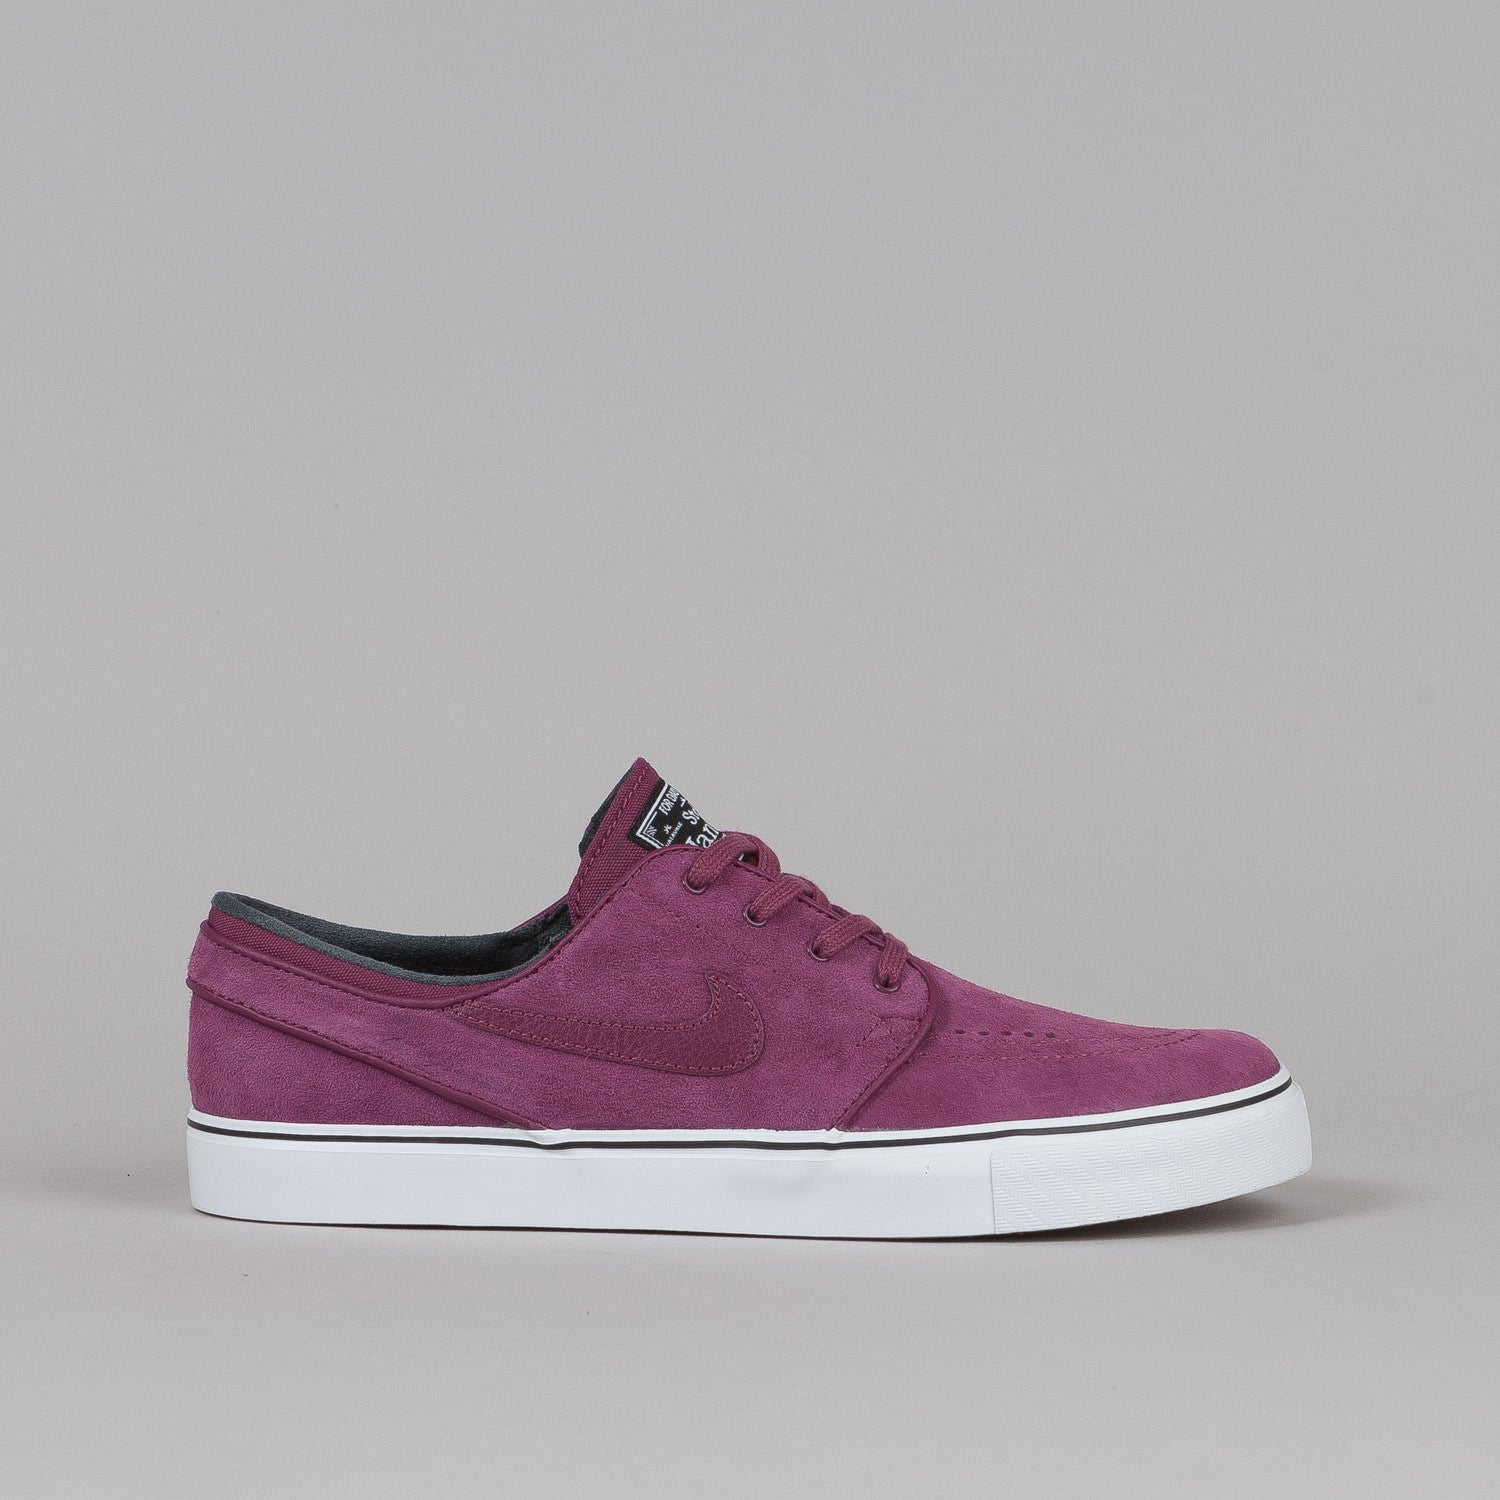 Nike SB Stefan Janoski SE Shoes Villain Red / Villain Red